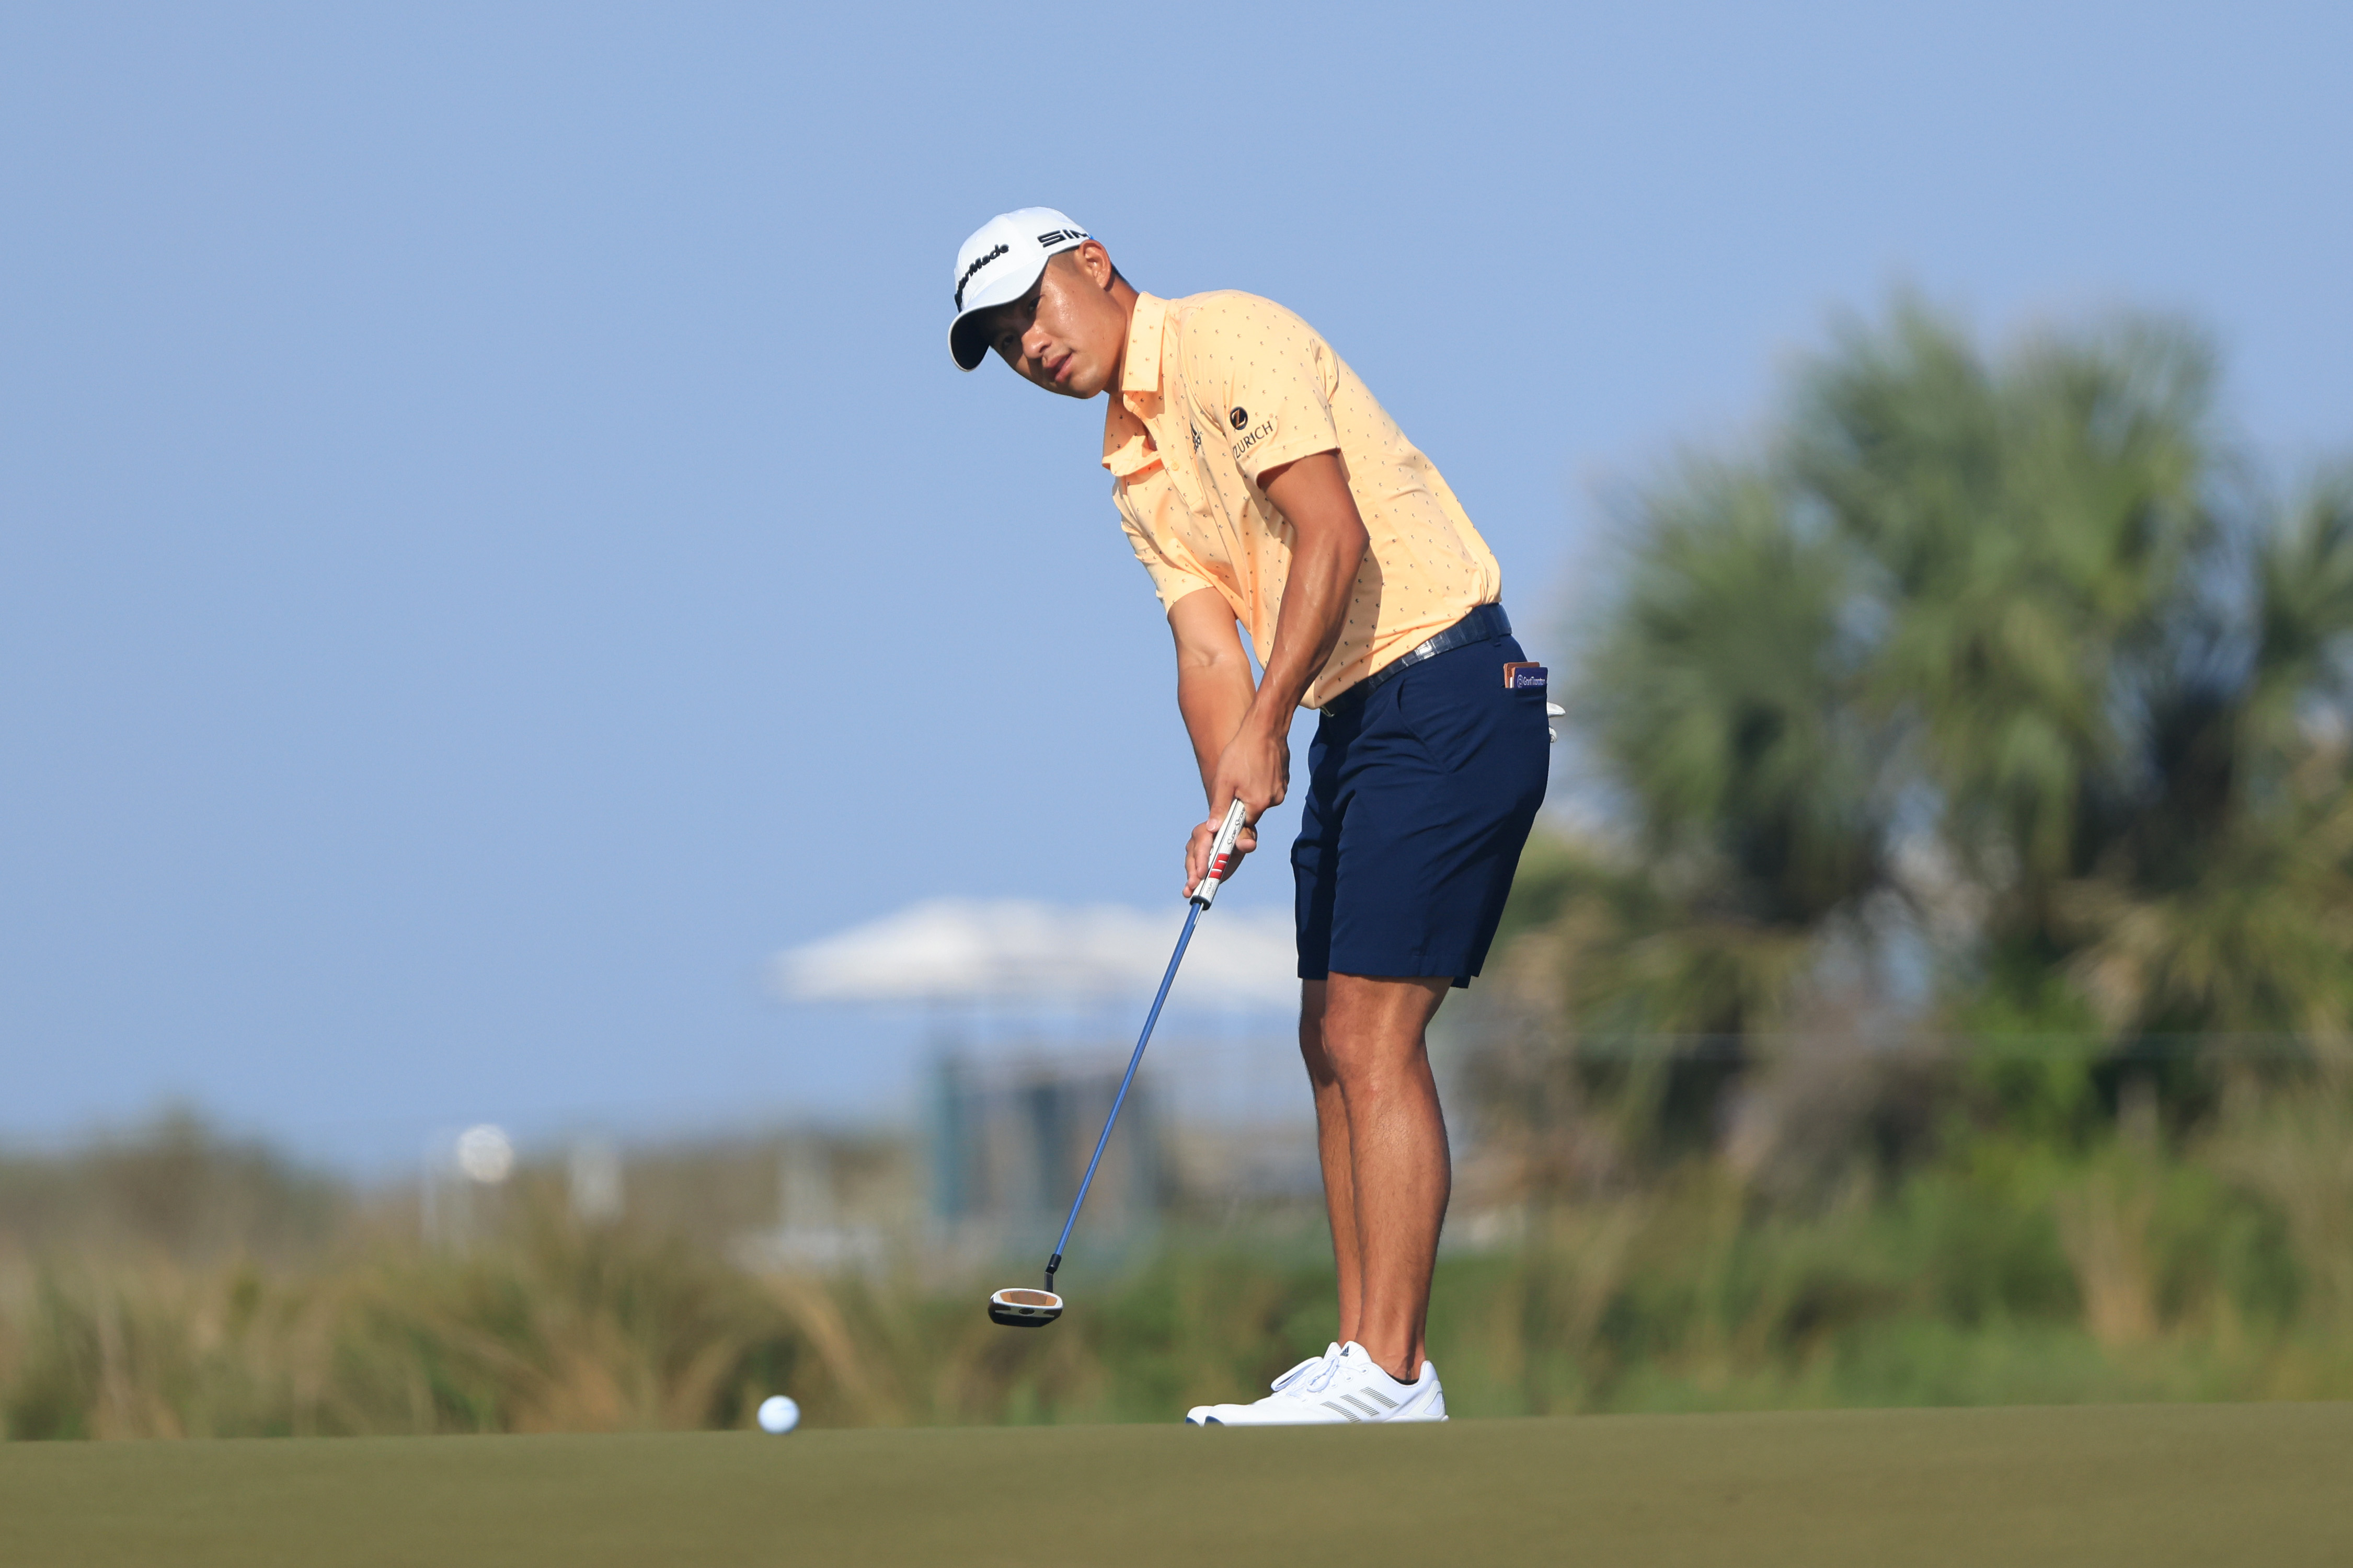 Collin Morikawa of the United States putts during a practice round prior to the 2021 PGA Championship at Kiawah Island Resort's Ocean Course on May 18, 2021 in Kiawah Island,